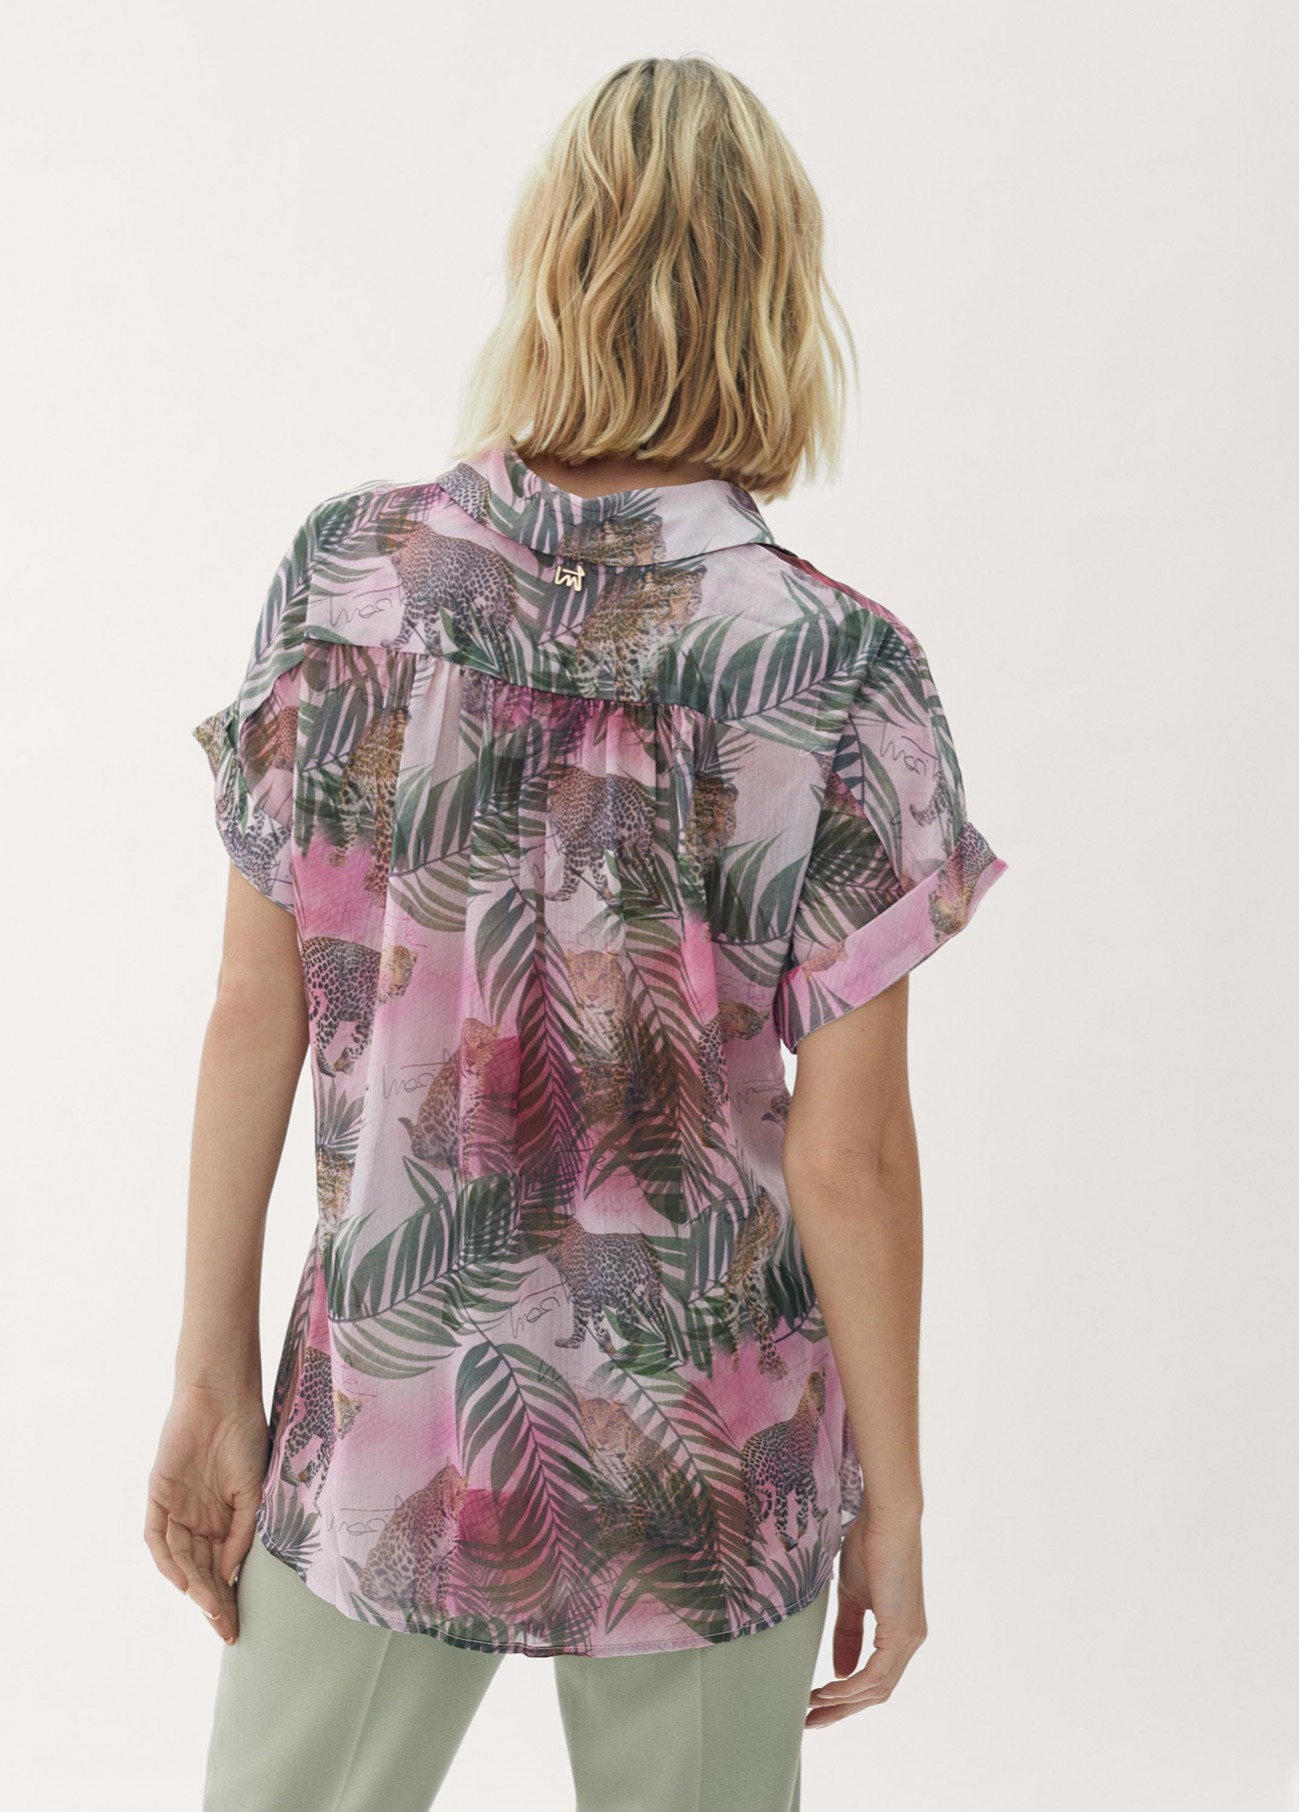 Blusa estampado tropical con detalle...